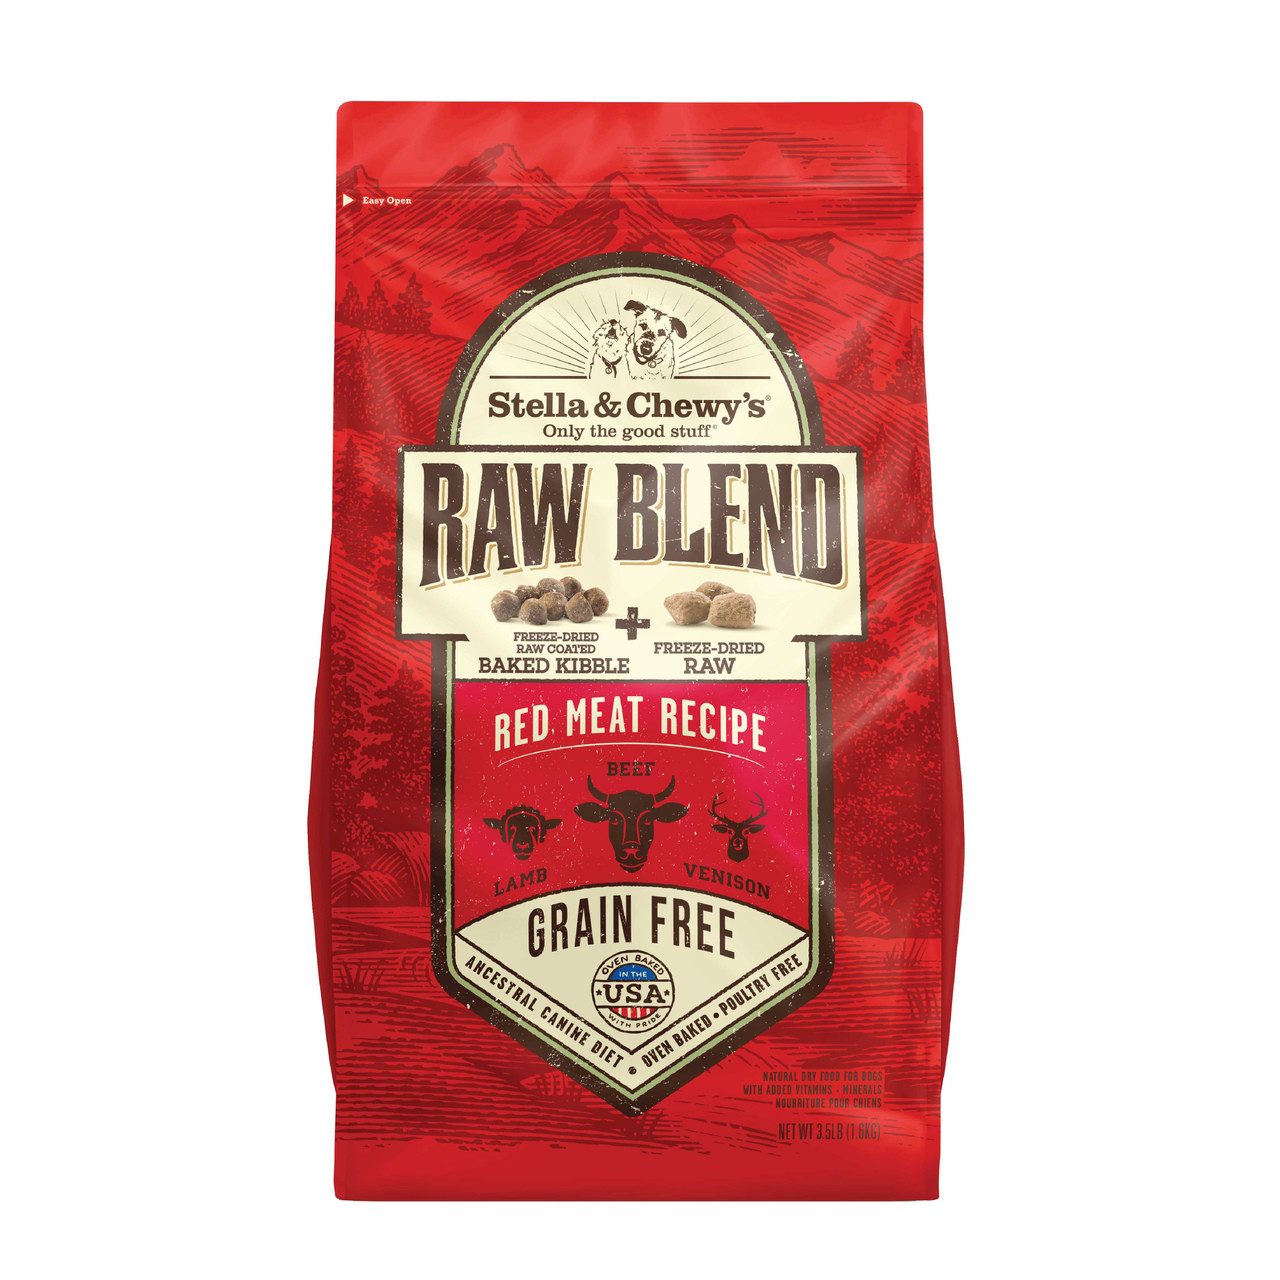 Stella & Chewy's Raw Blend Red Meat Recipe, Raw Coated Baked Kibble + Freeze-Dried Meal Mixers Dry Dog Food